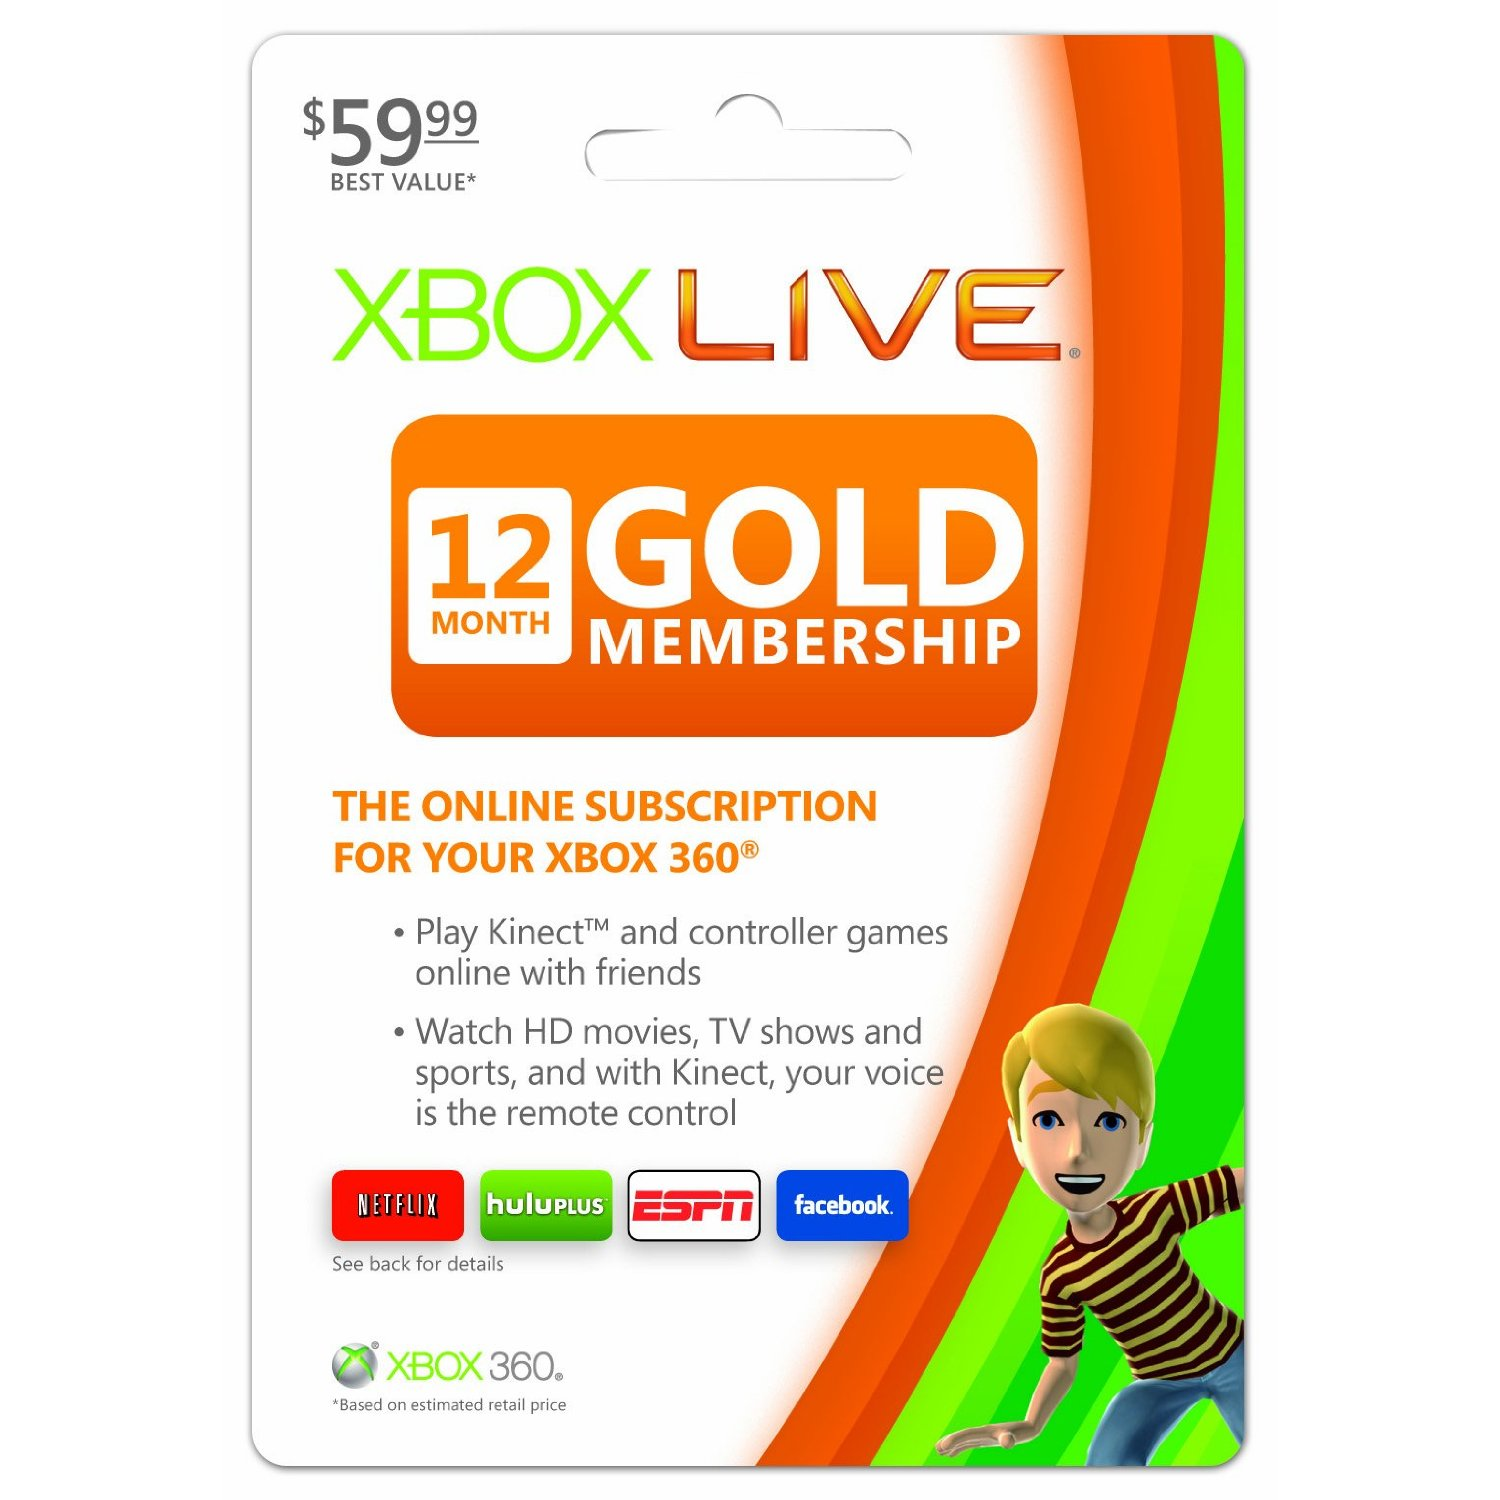 6-month xbox live gold membership for xbox 360 | gamestop.